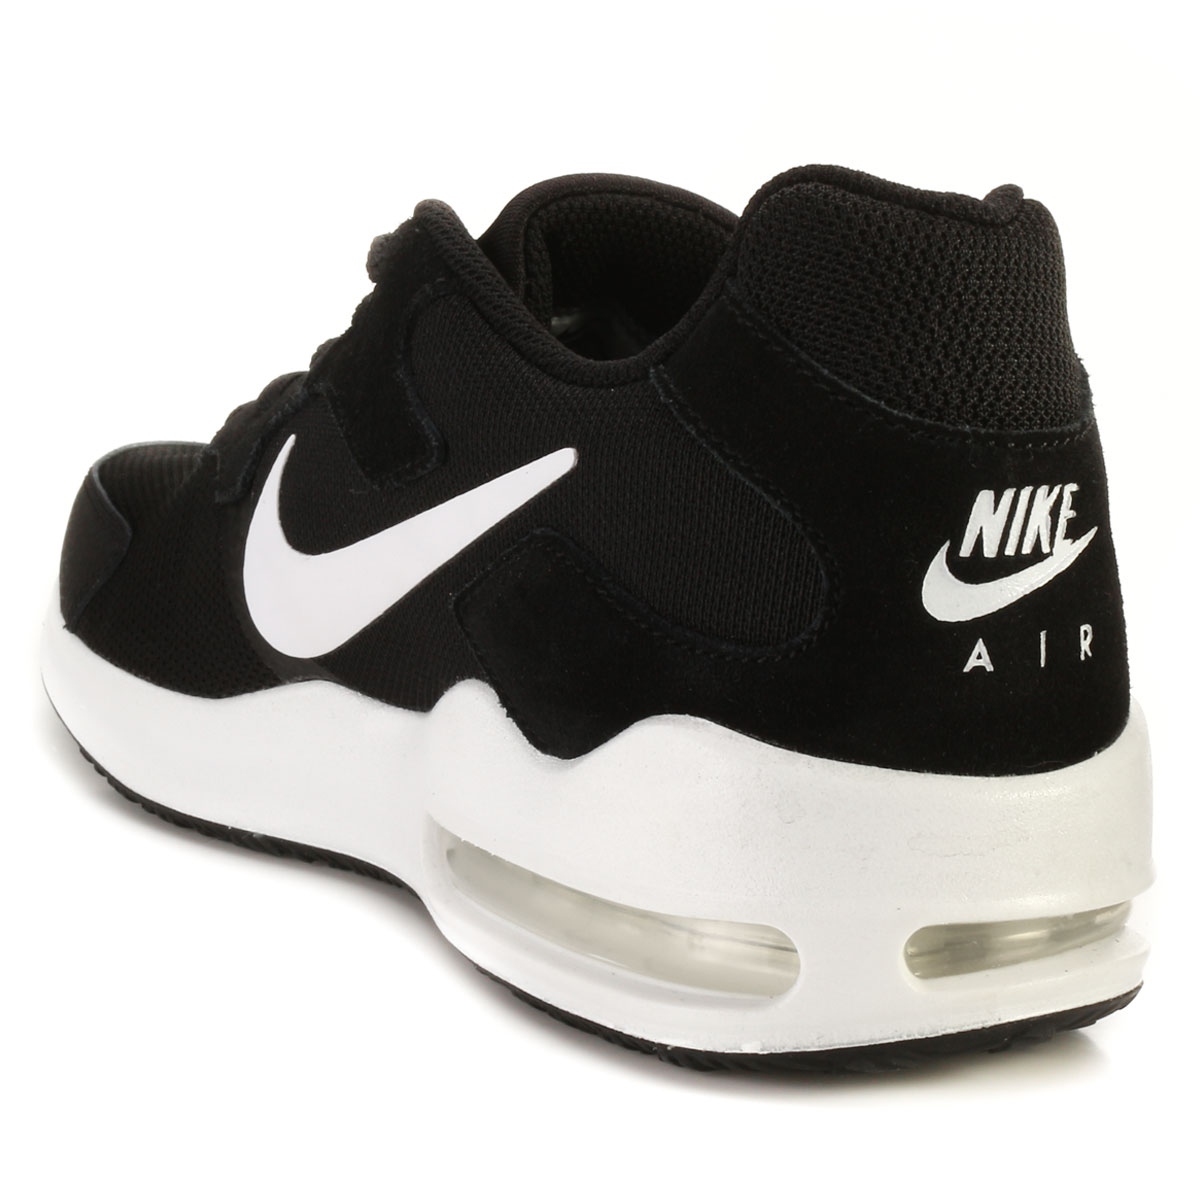 251cd0a6923 ... Tênis Nike Air Max Guile Preto-Branco